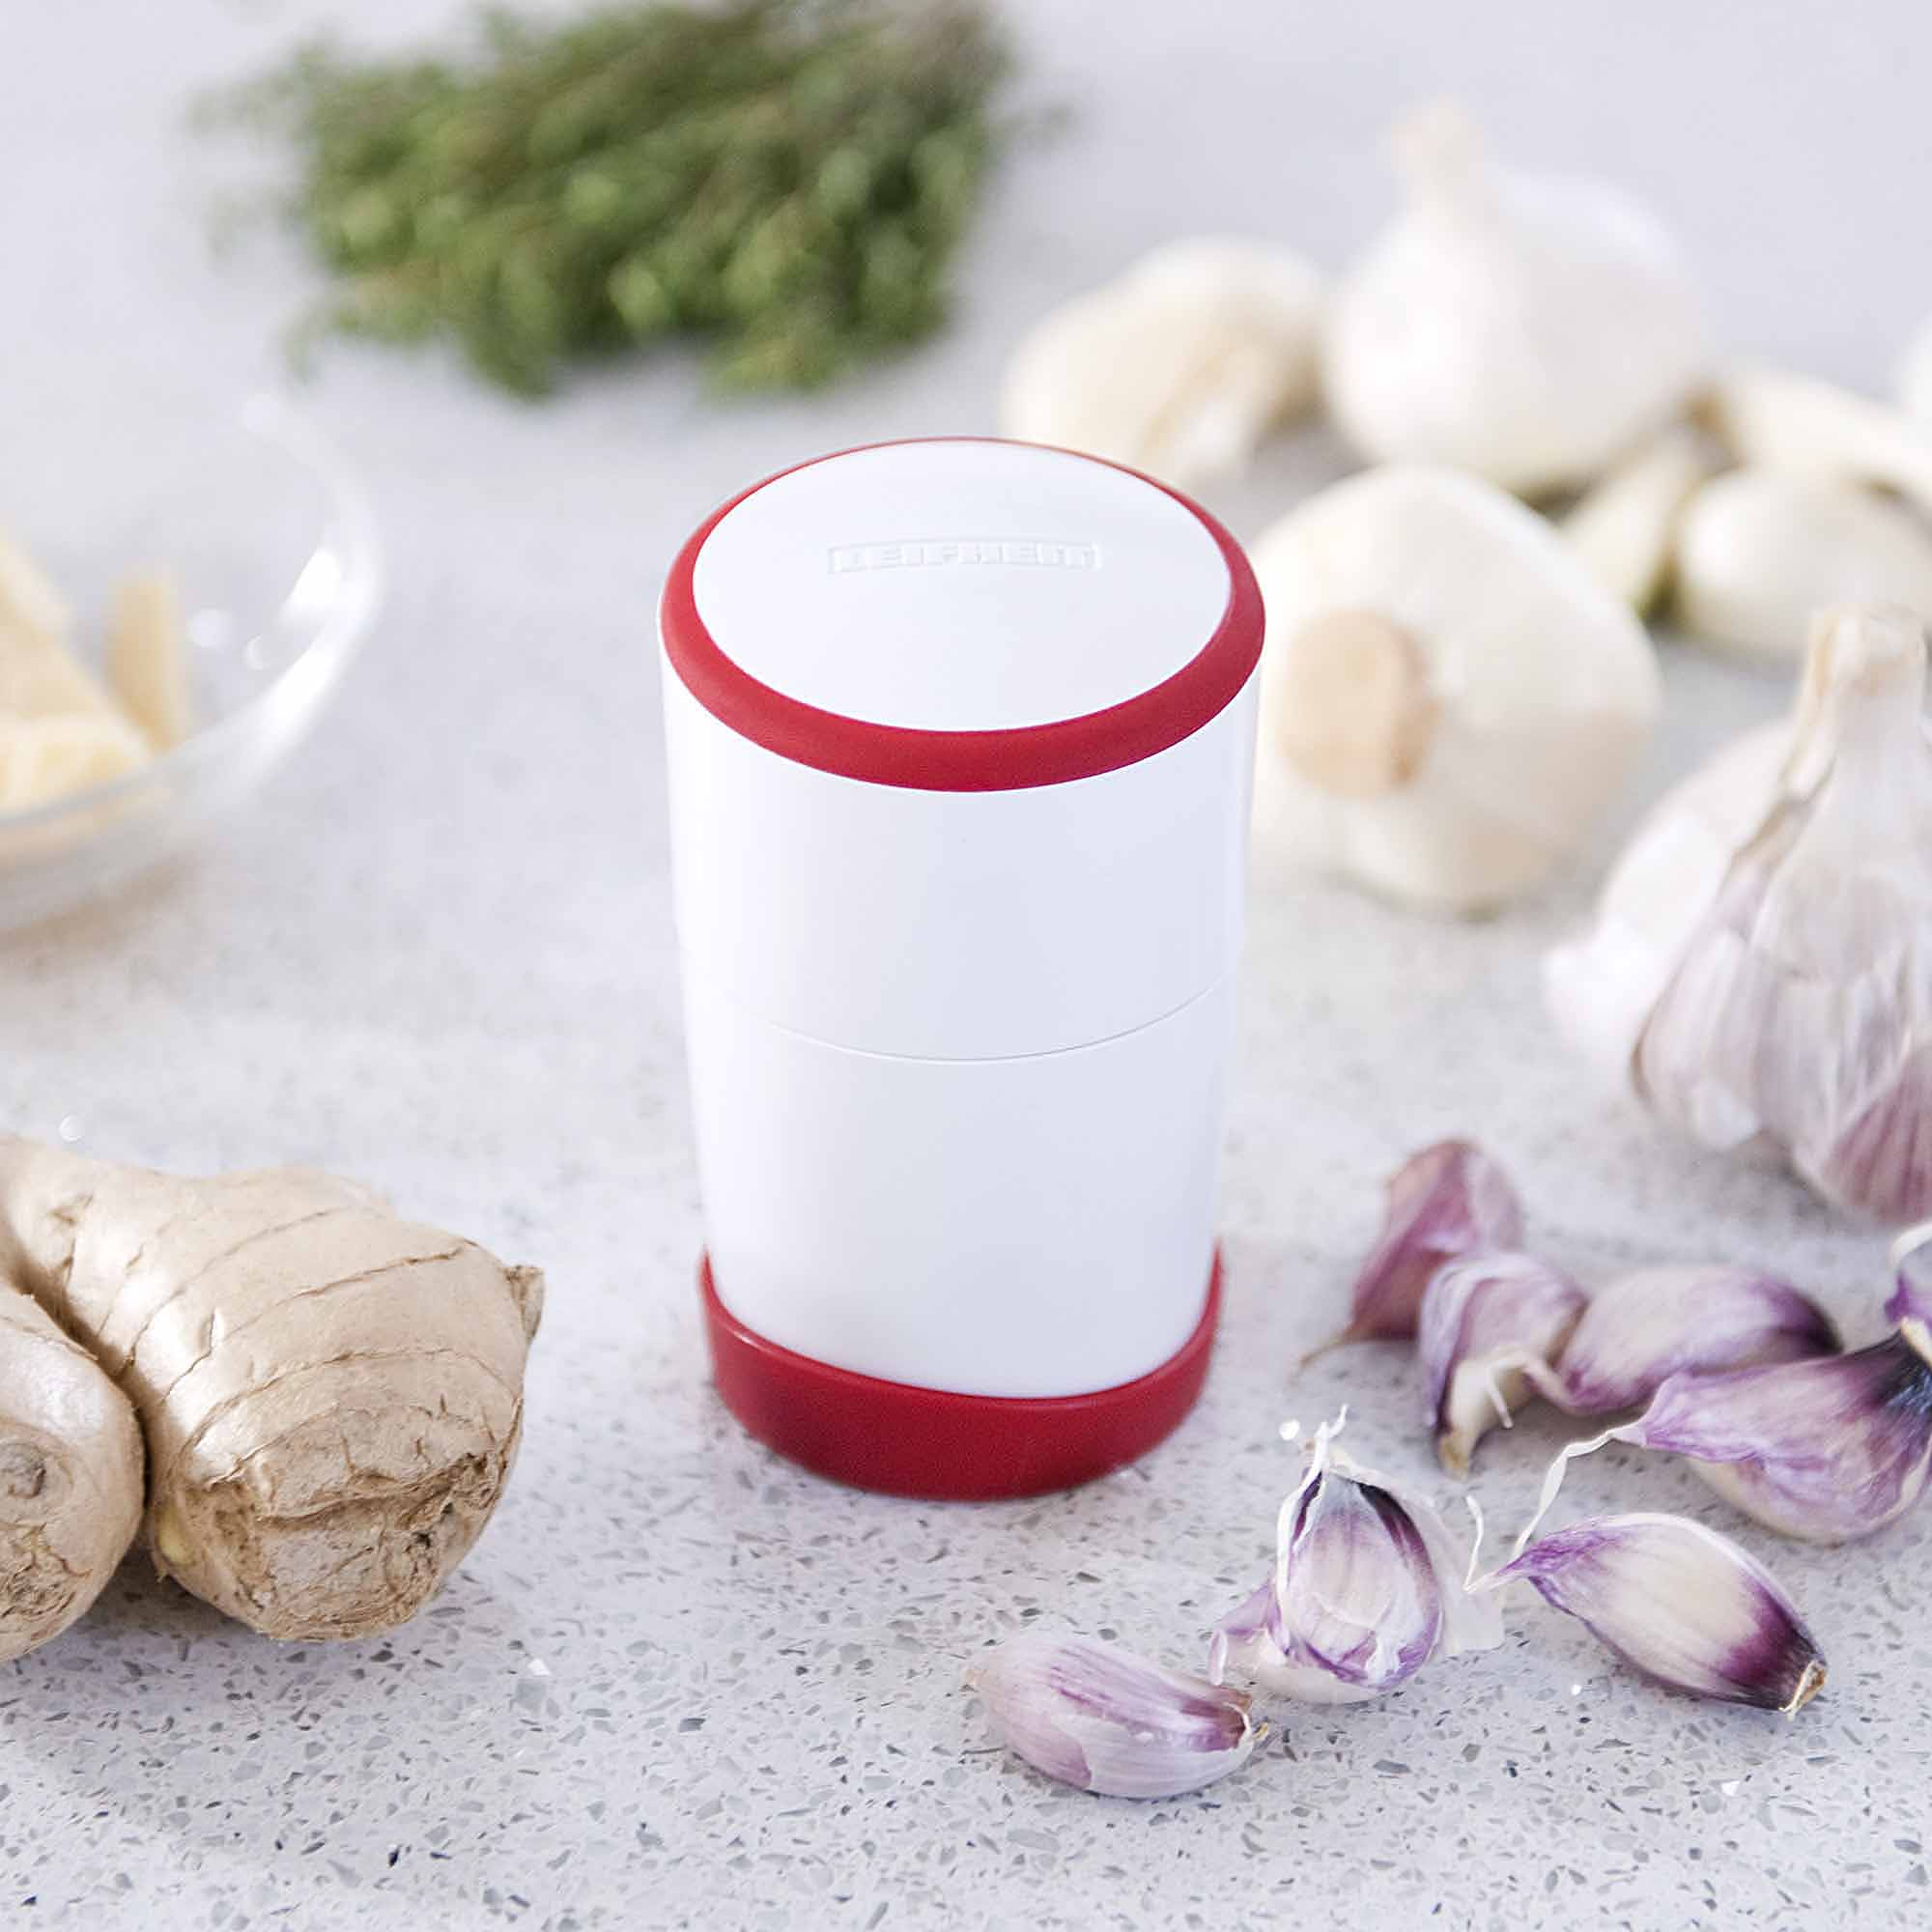 Leifheit Fine-Cut Gourmet Garlic Slicer, White and Red